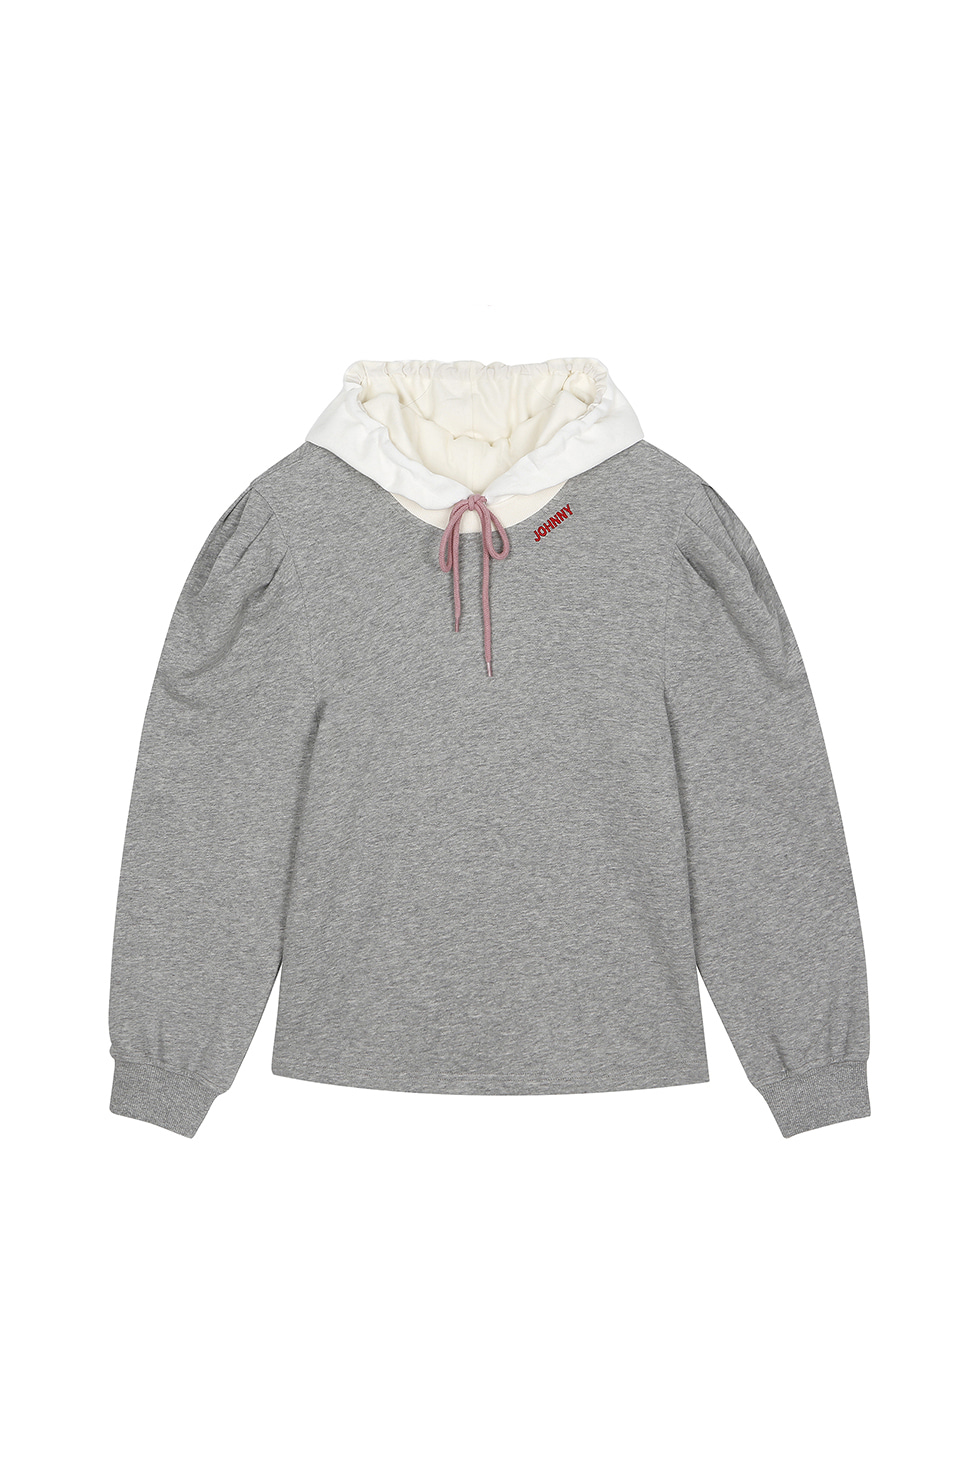 BIG PUFF JOHNNY HOODIE - GREY